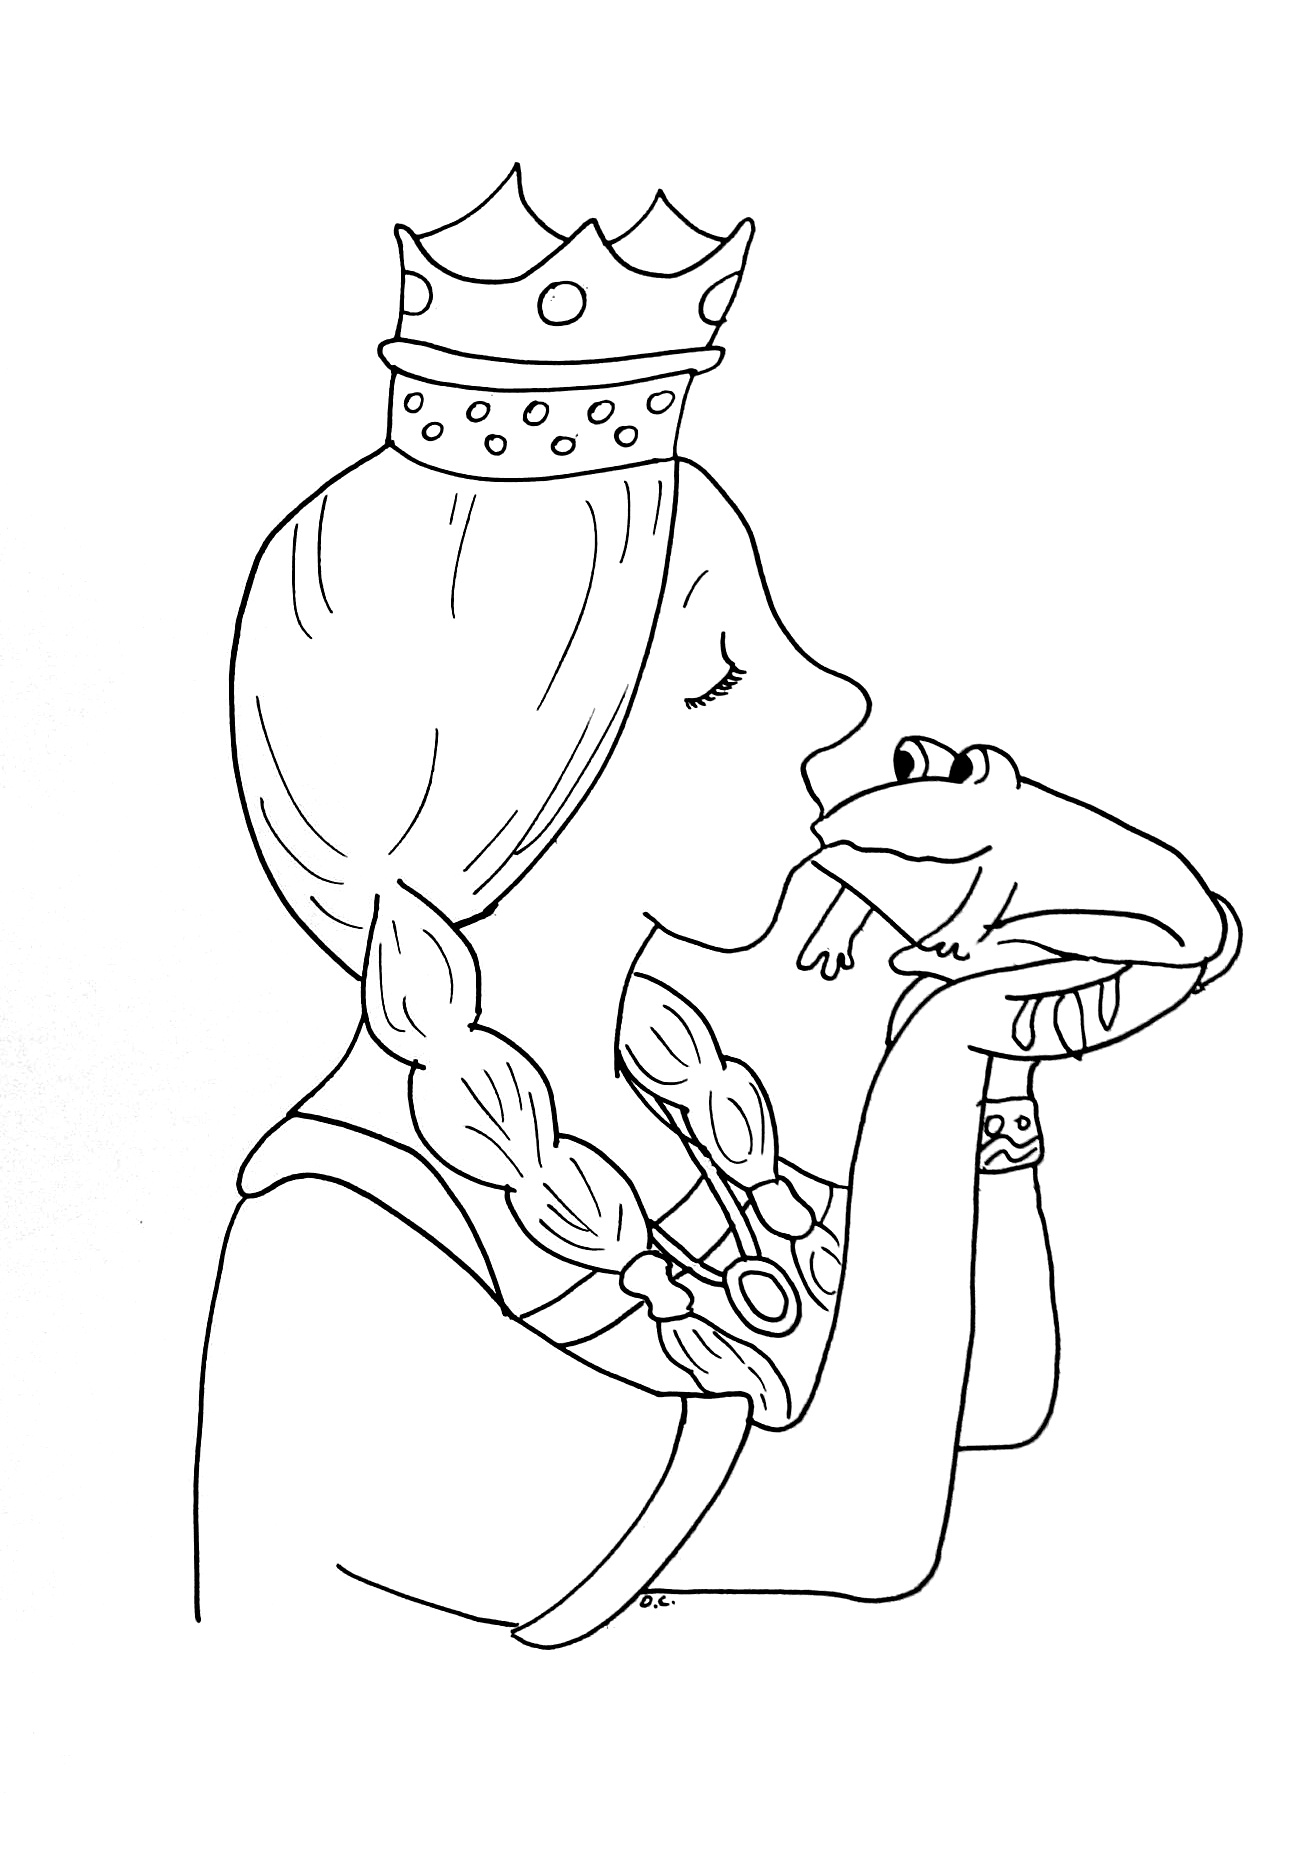 princess frog fairy tales coloring pages for adults justcolor